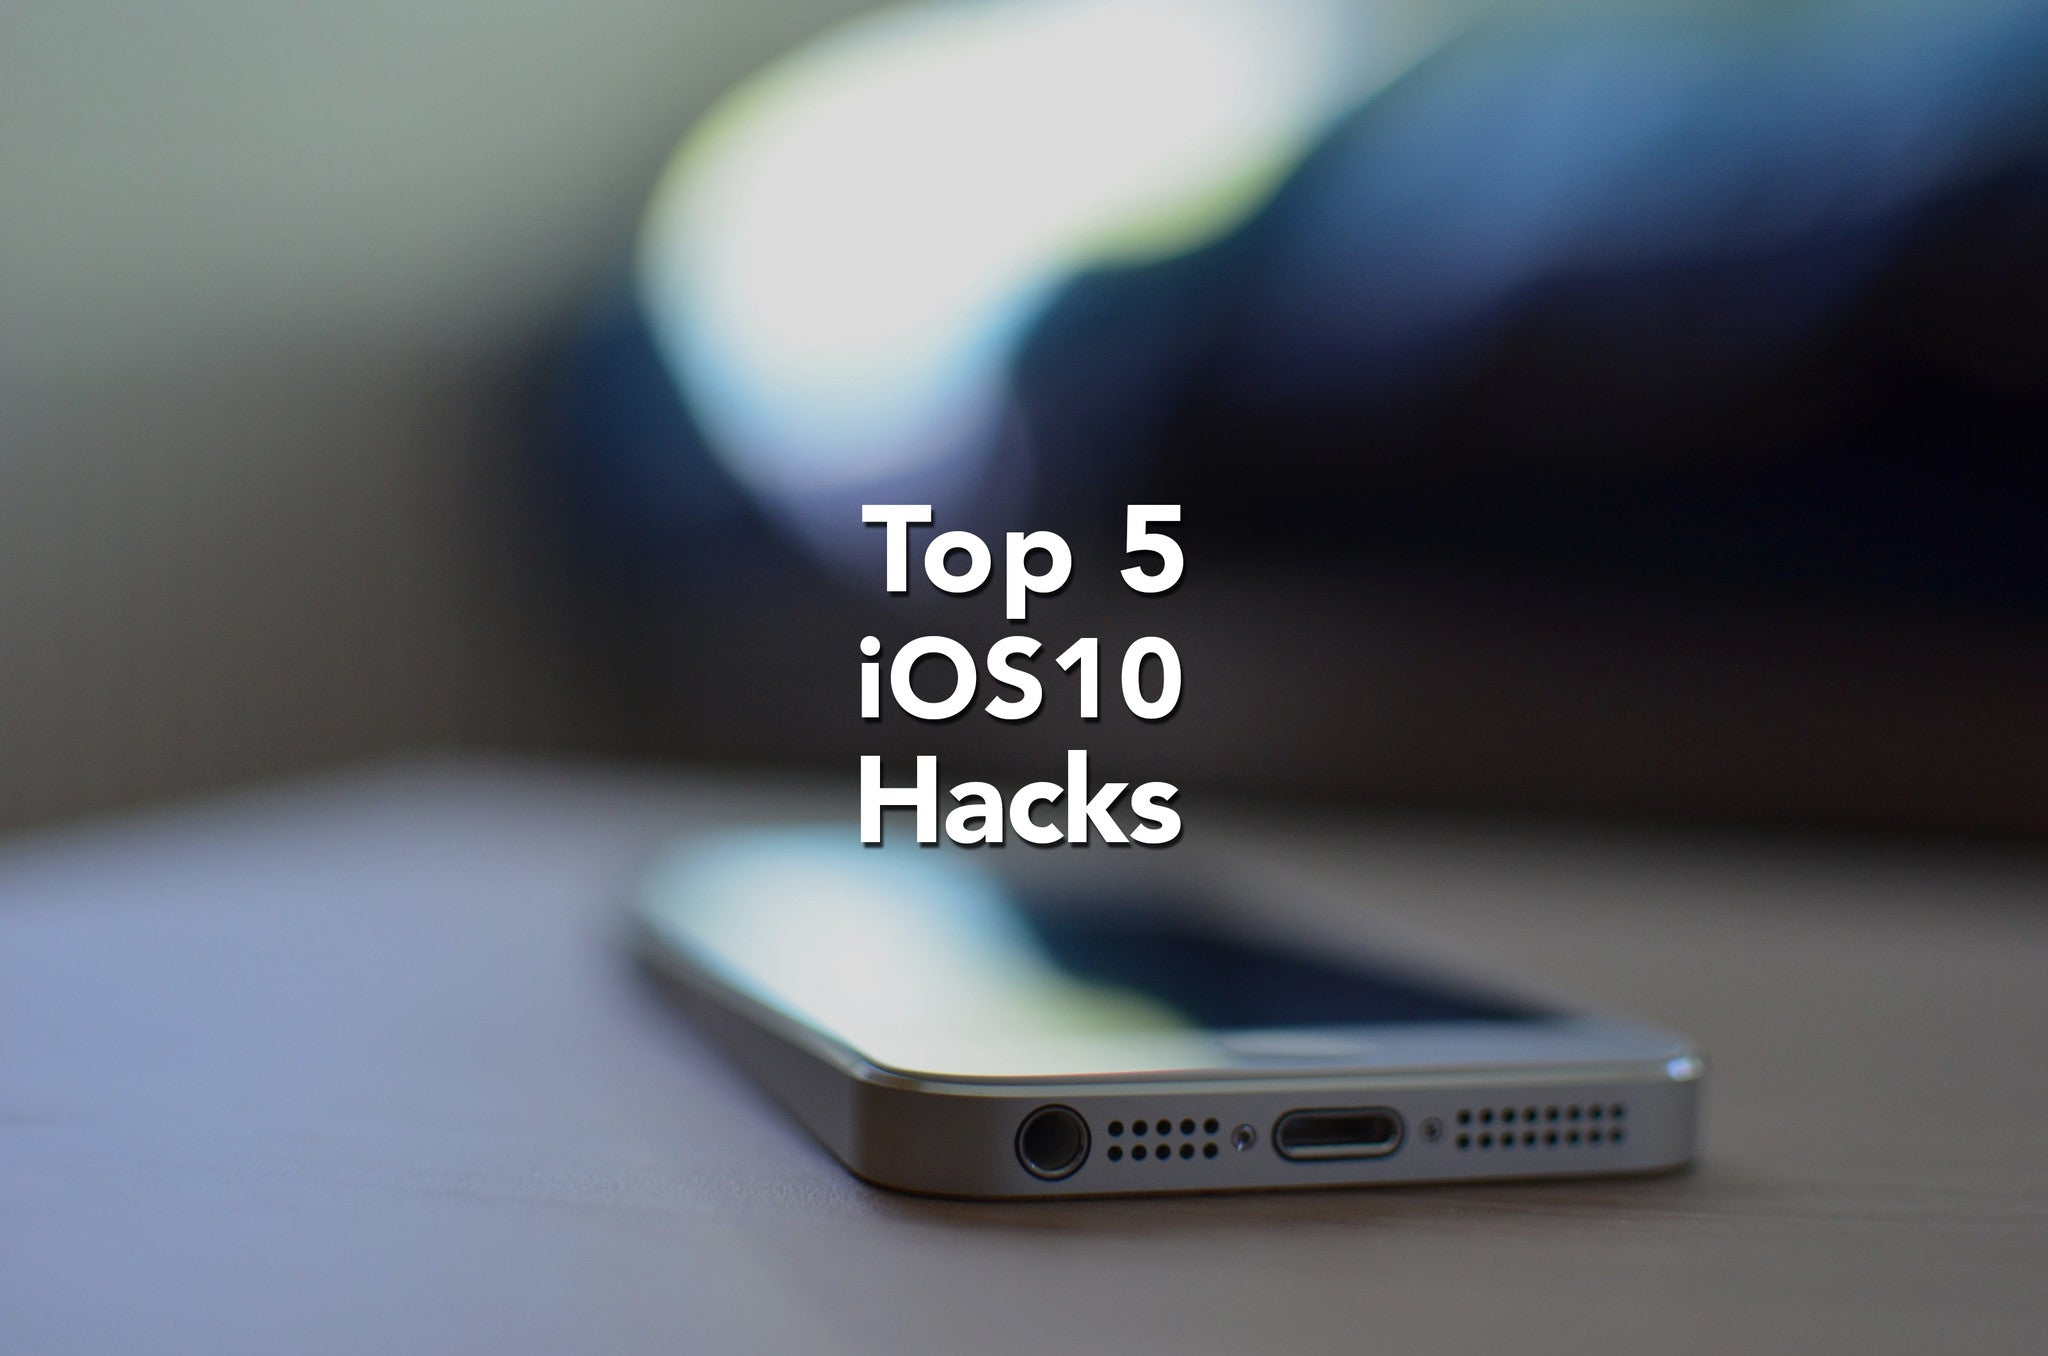 Top 5 iOS 10 Hacks